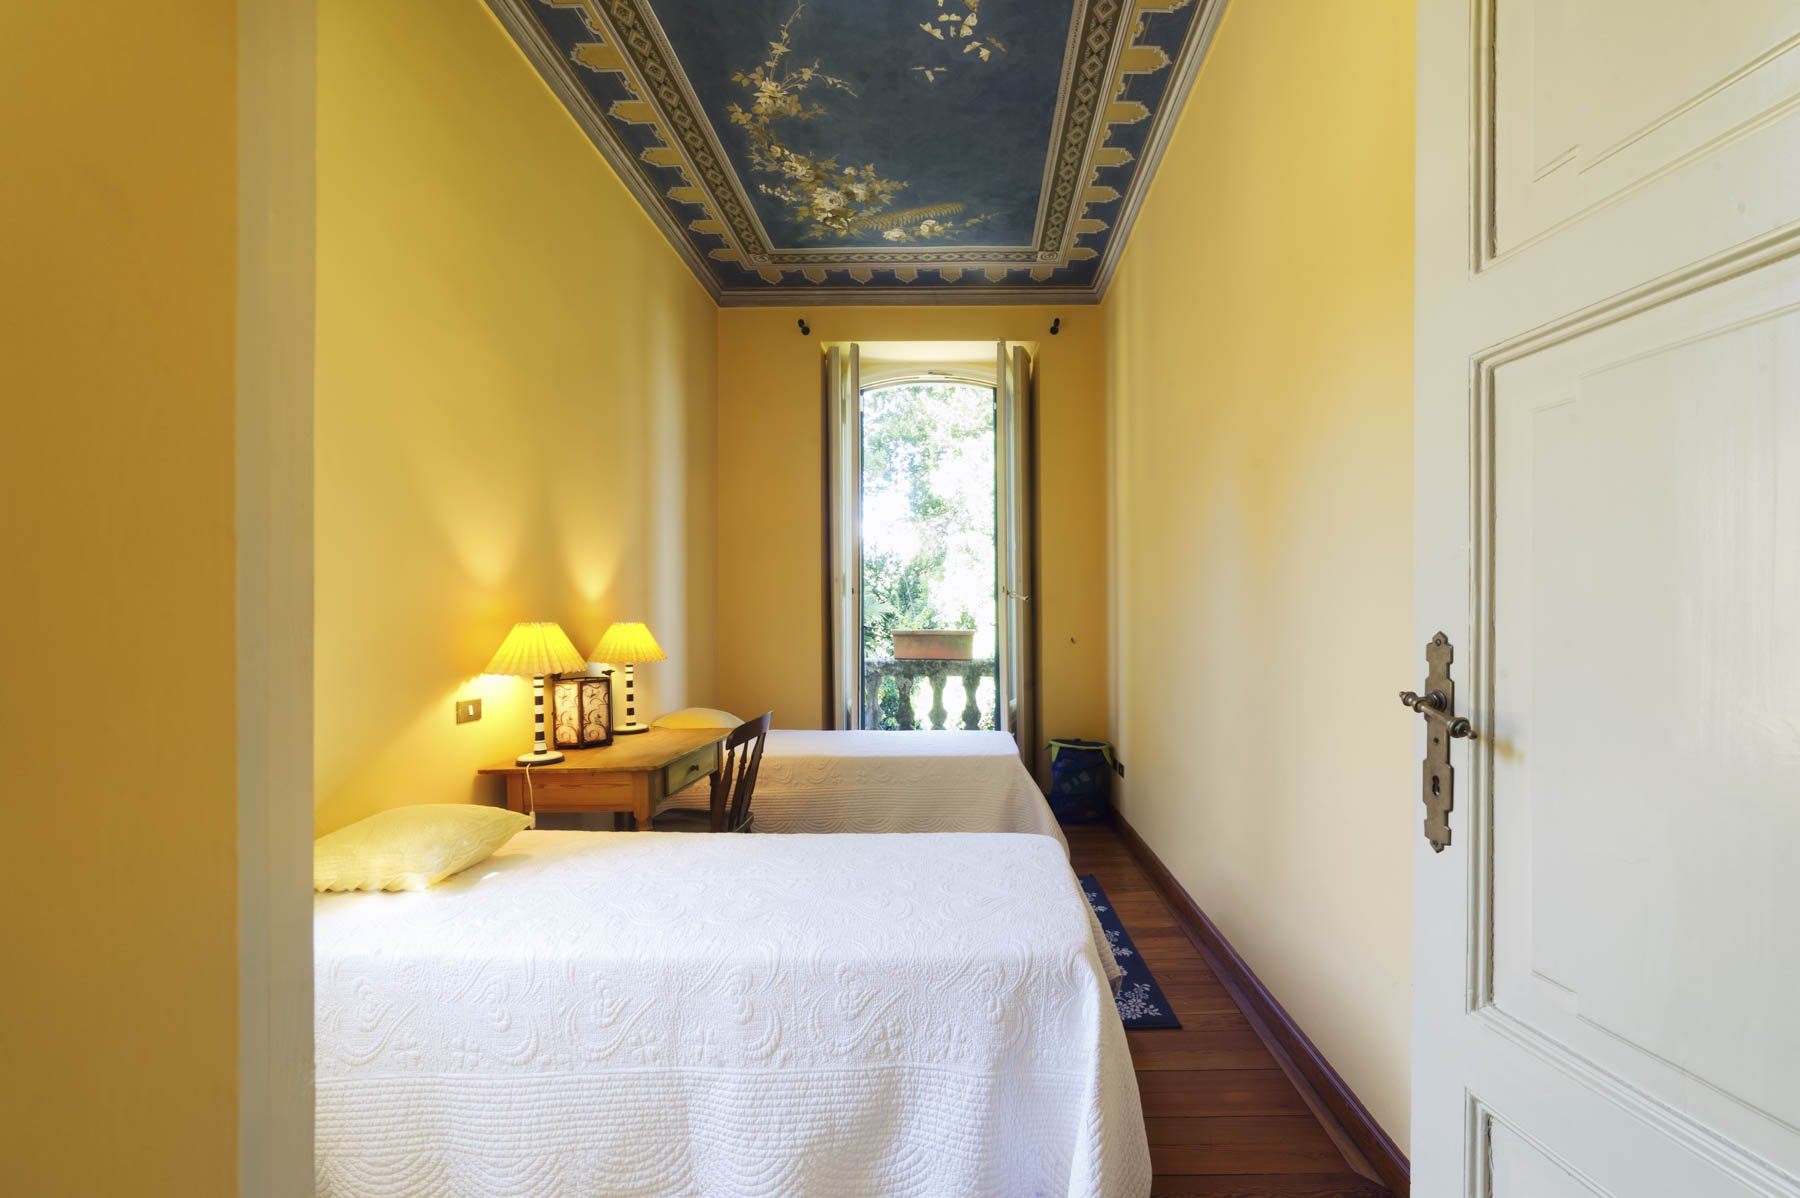 Luxurious apartment for sale in Stresa - bedroom